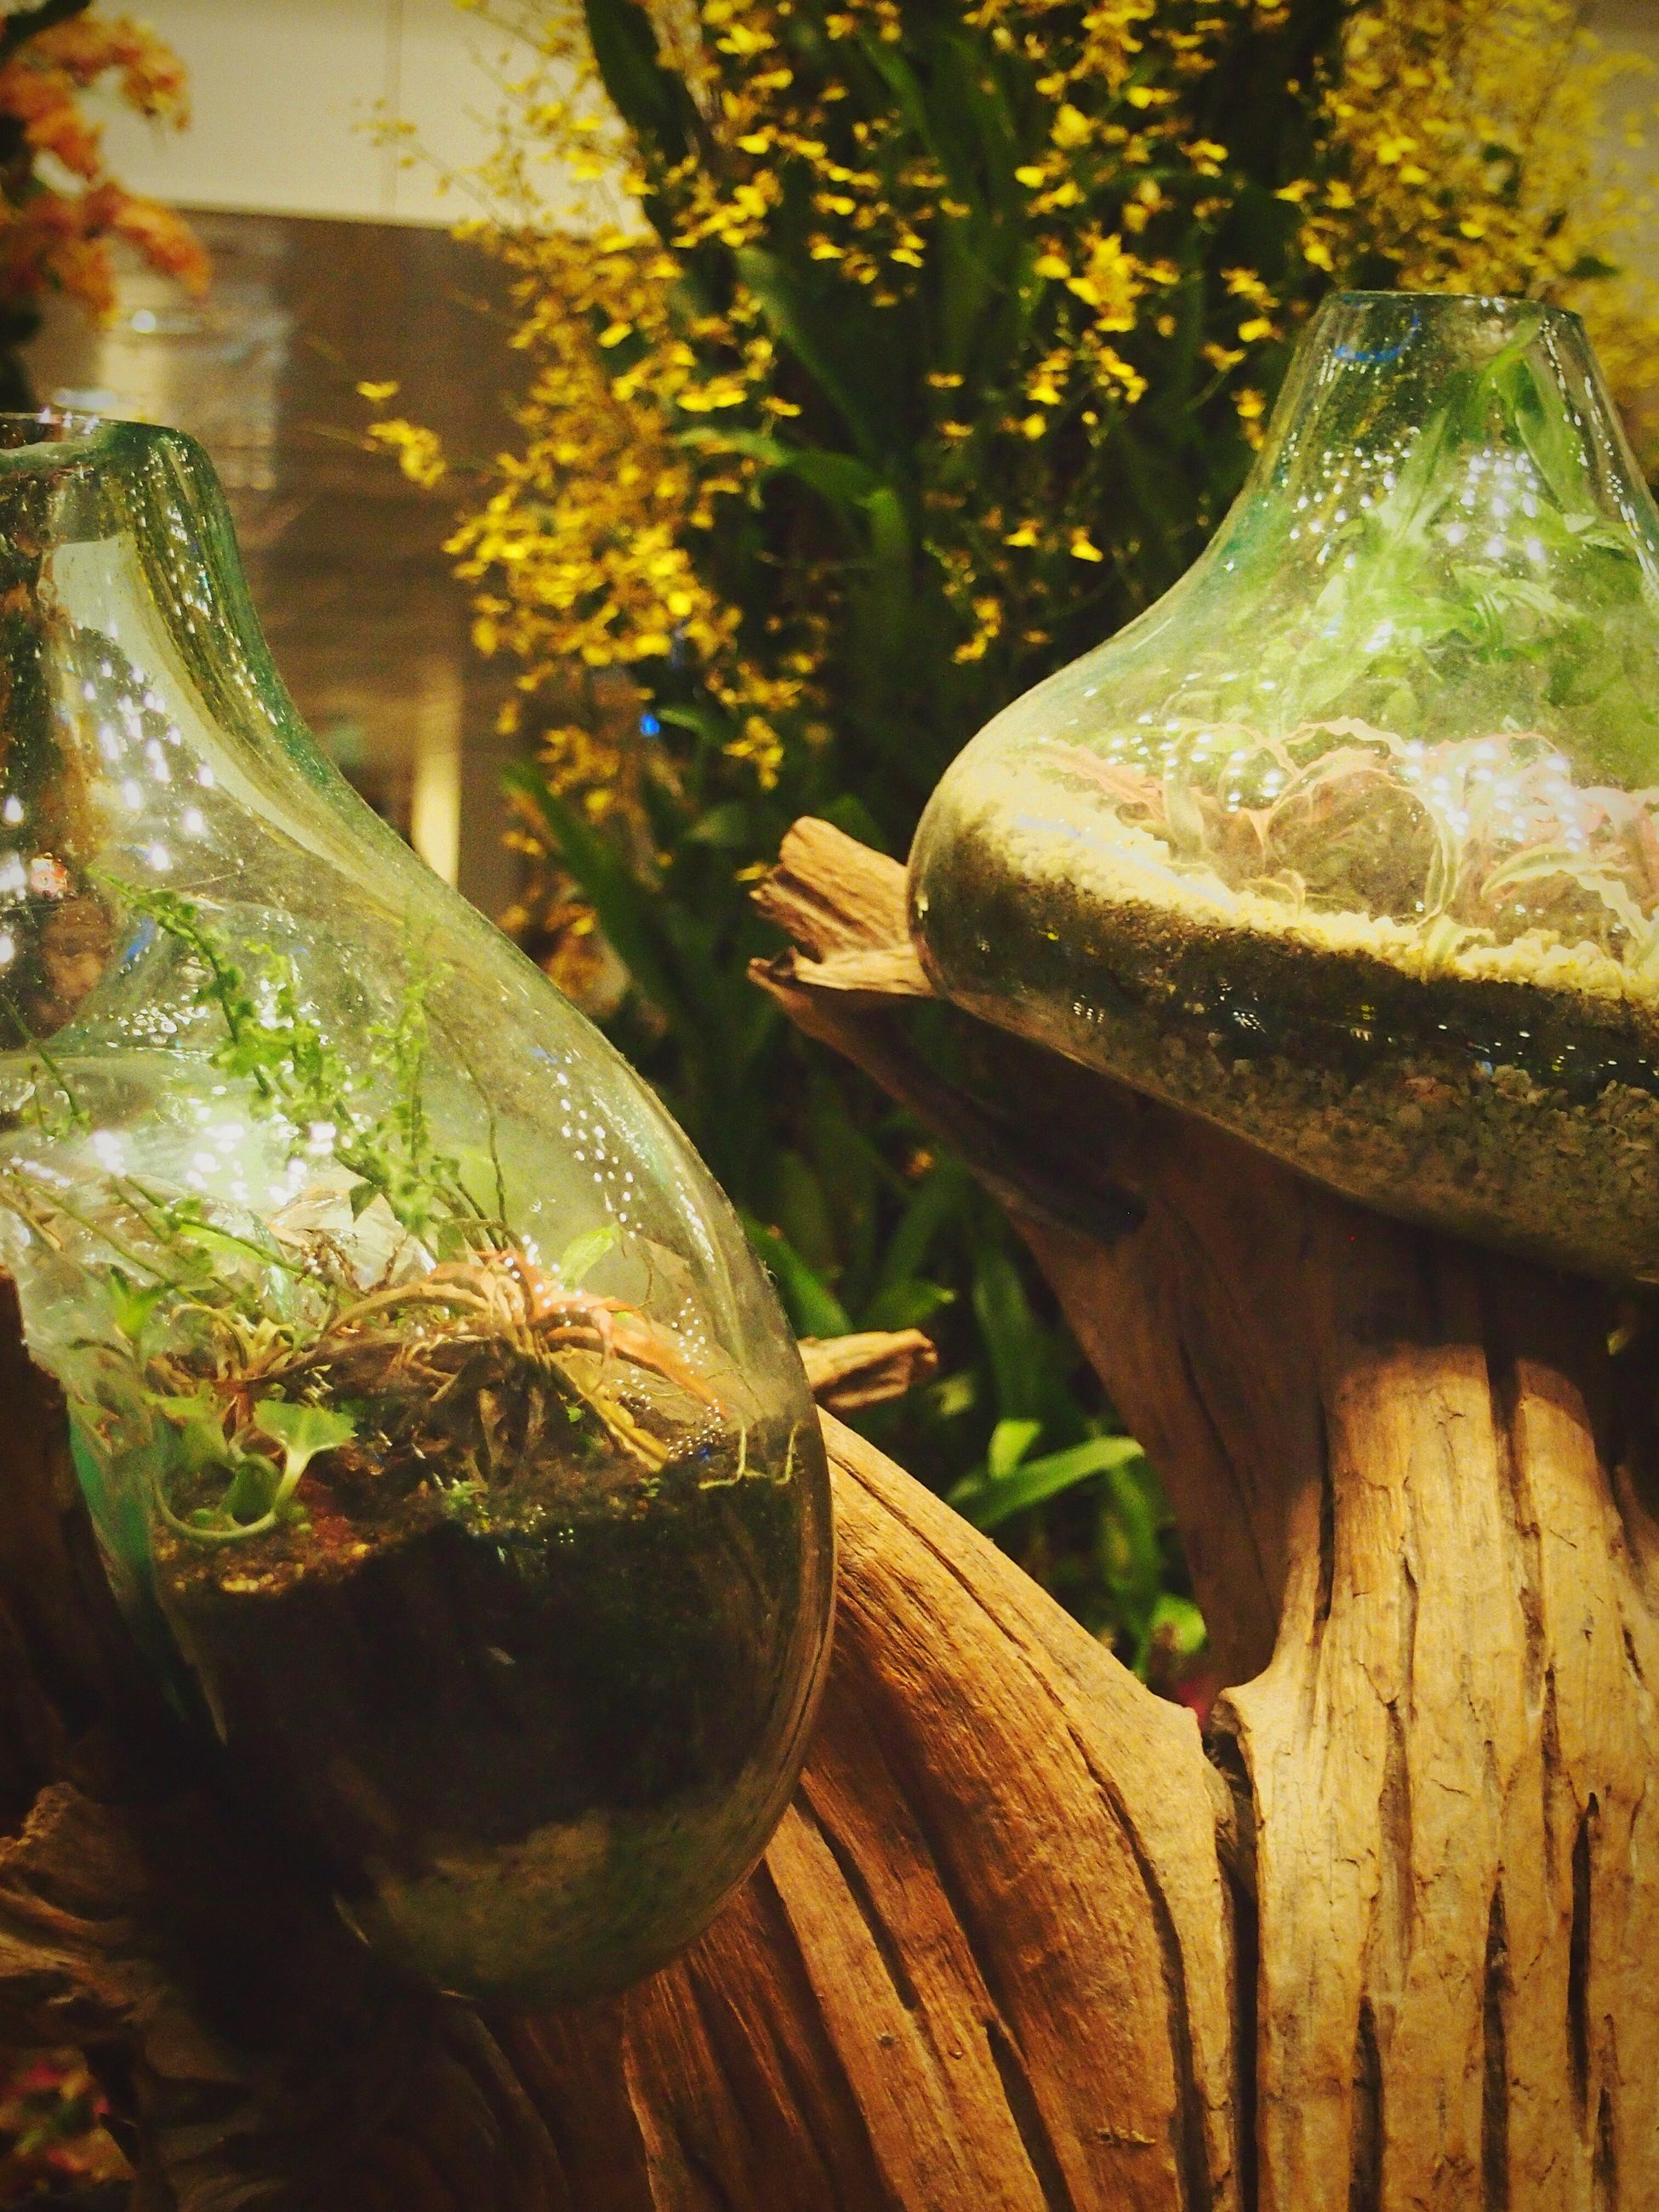 close-up, plant, growth, leaf, wood - material, focus on foreground, nature, no people, outdoors, day, green color, tree, sunlight, water, fountain, table, old, glass - material, potted plant